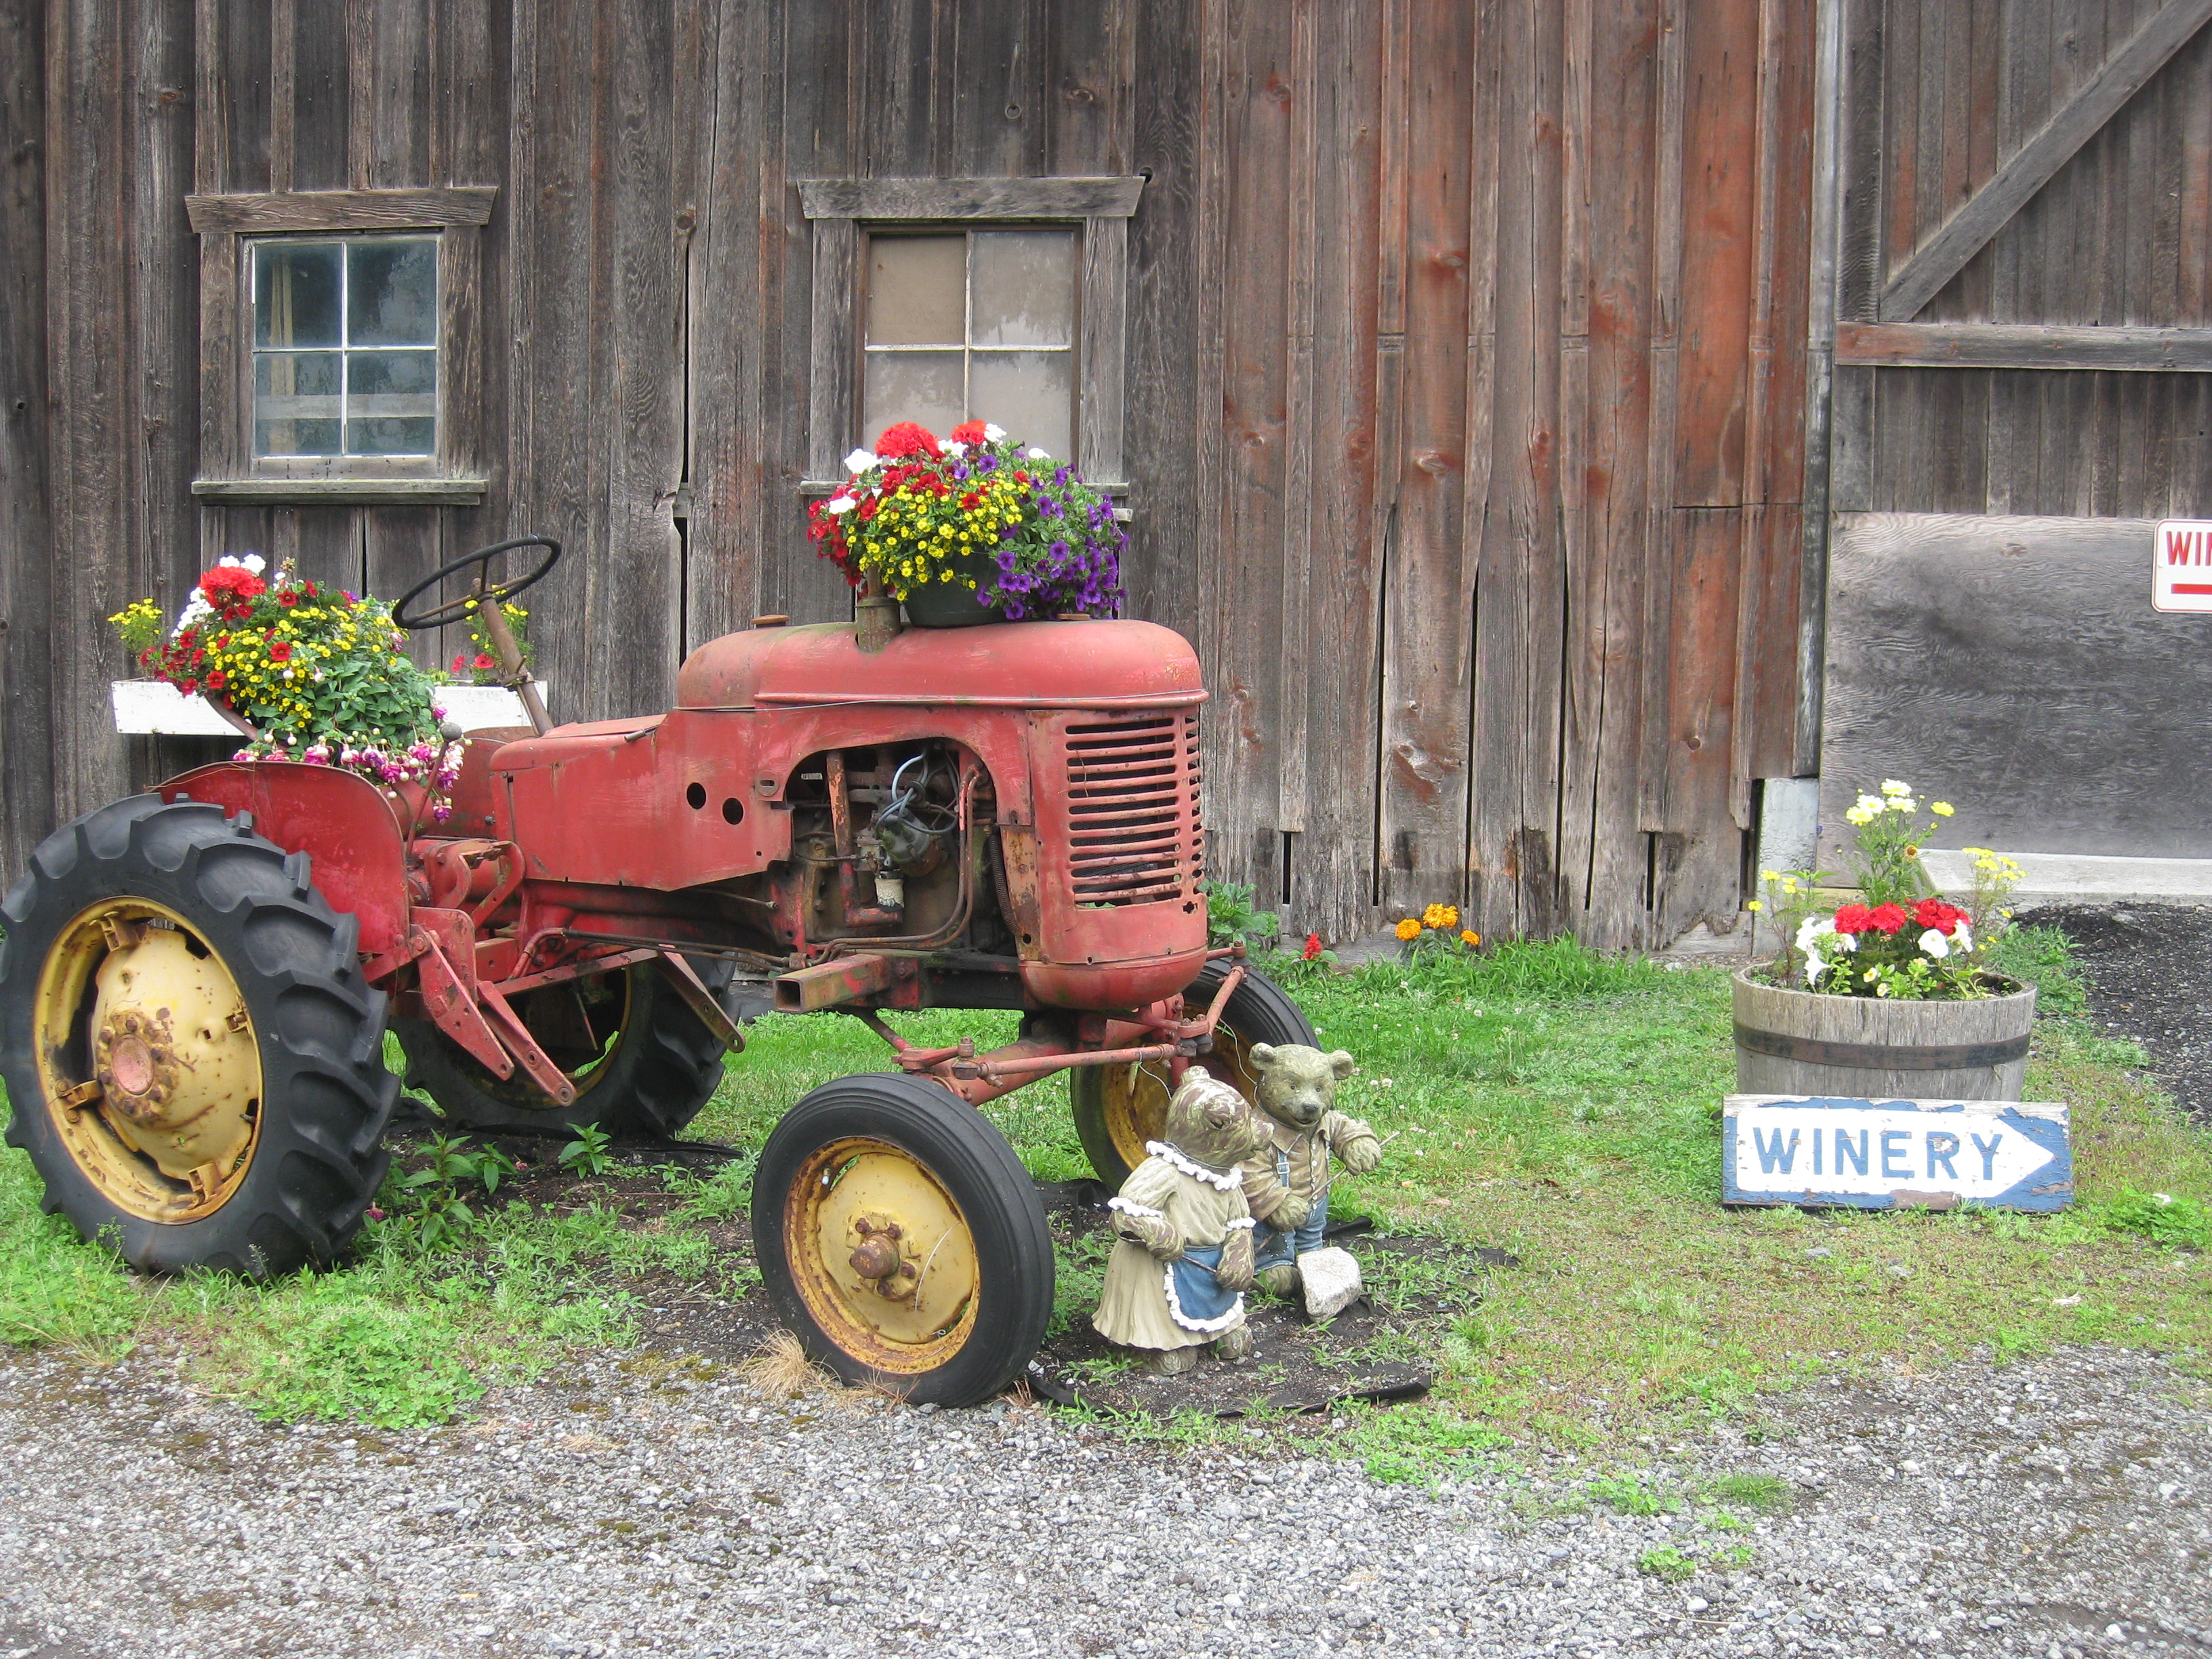 Wellbrook Winery, Delta, BC - vintage tractor